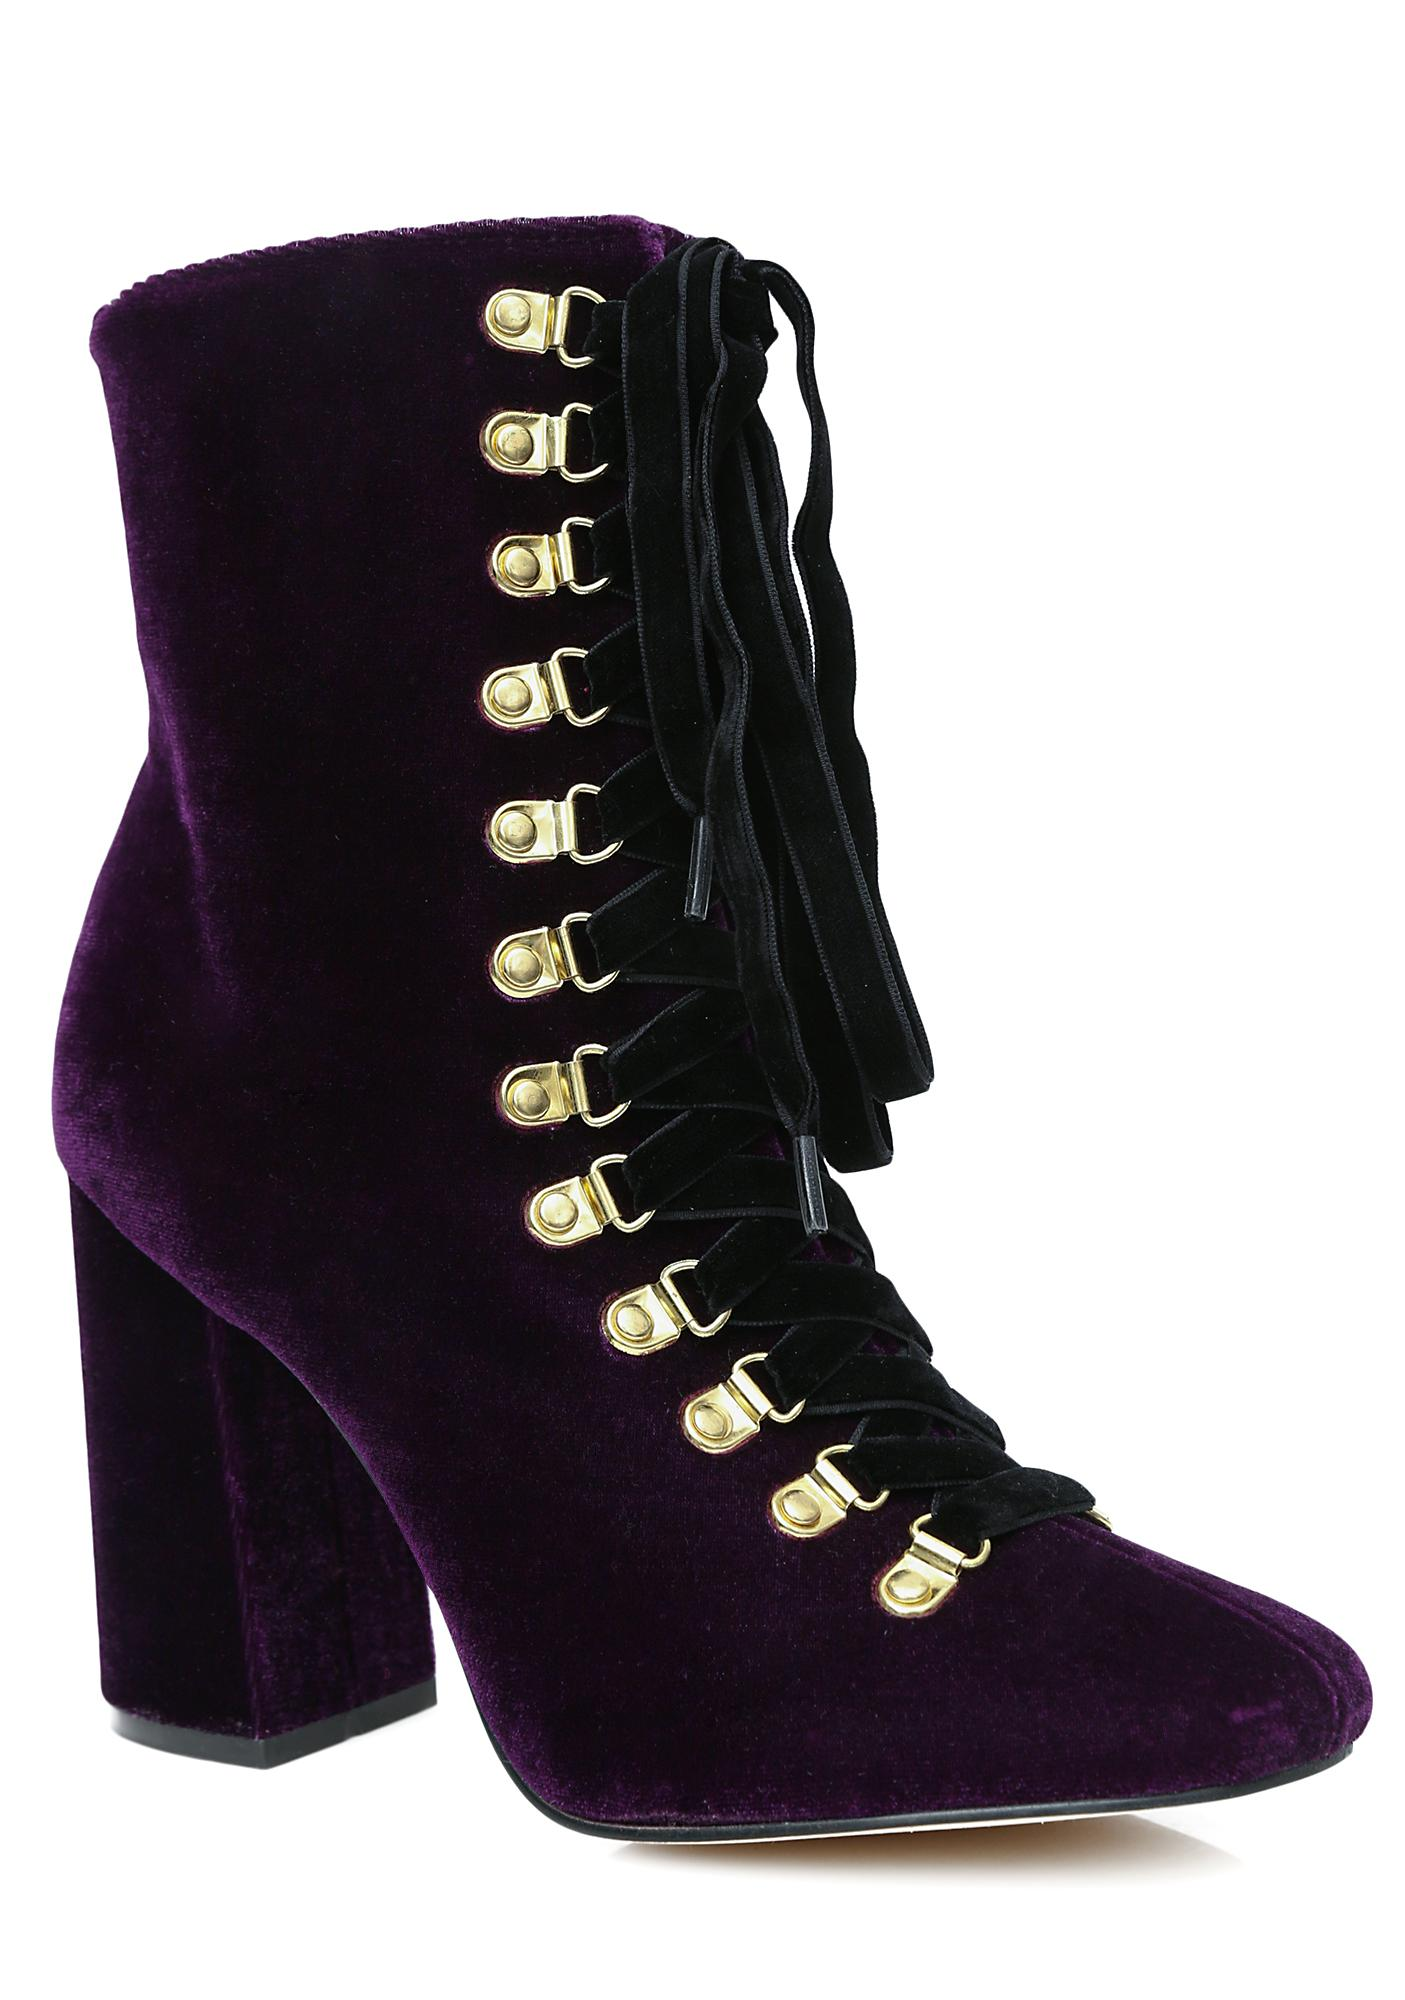 Privileged Plum Reeboot Velvet Lace-Up Booties